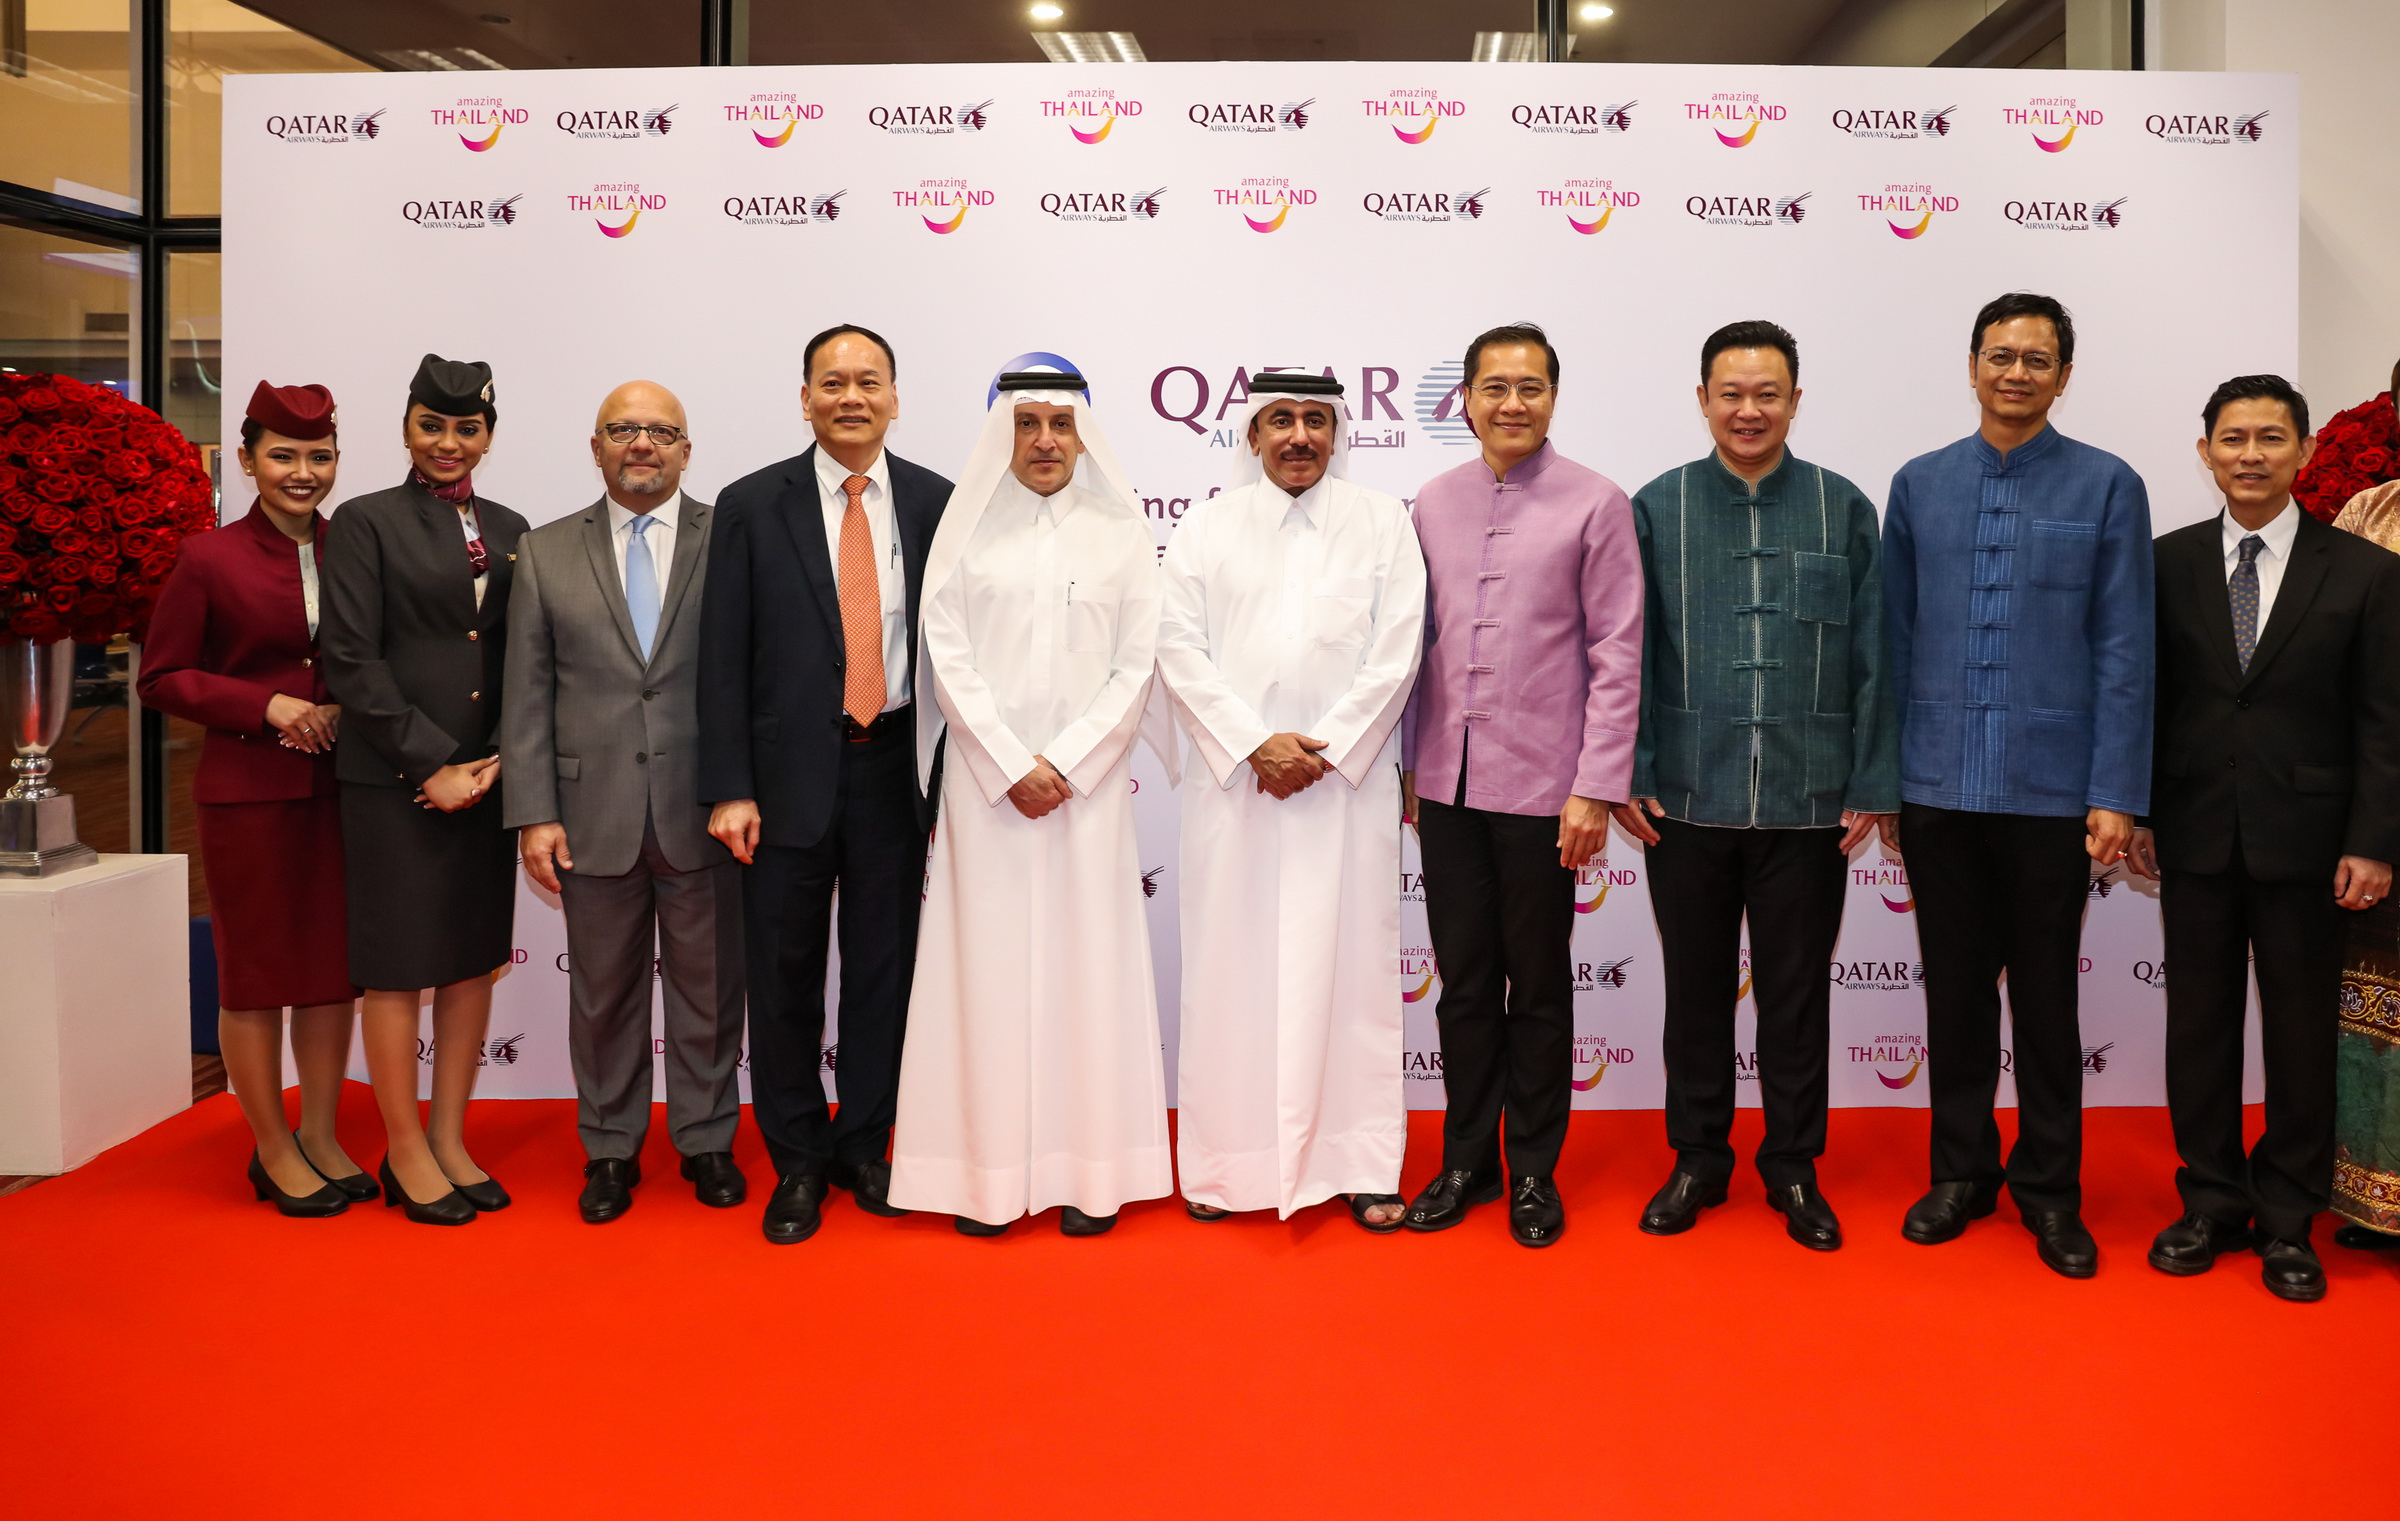 Qatar Airways_group photo